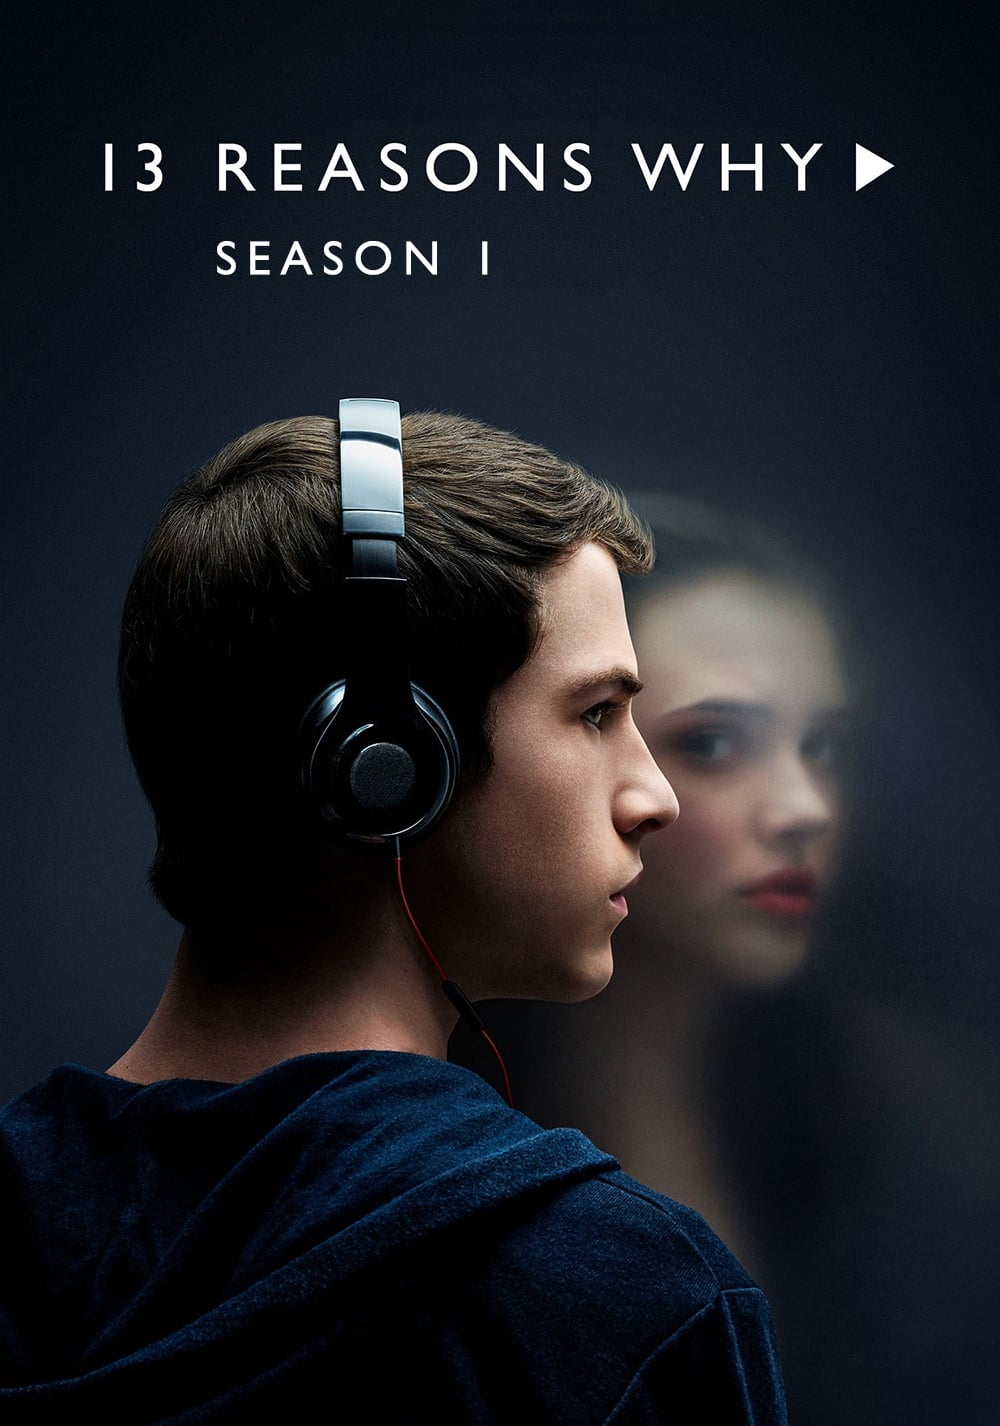 13 Reasons Why Season 1